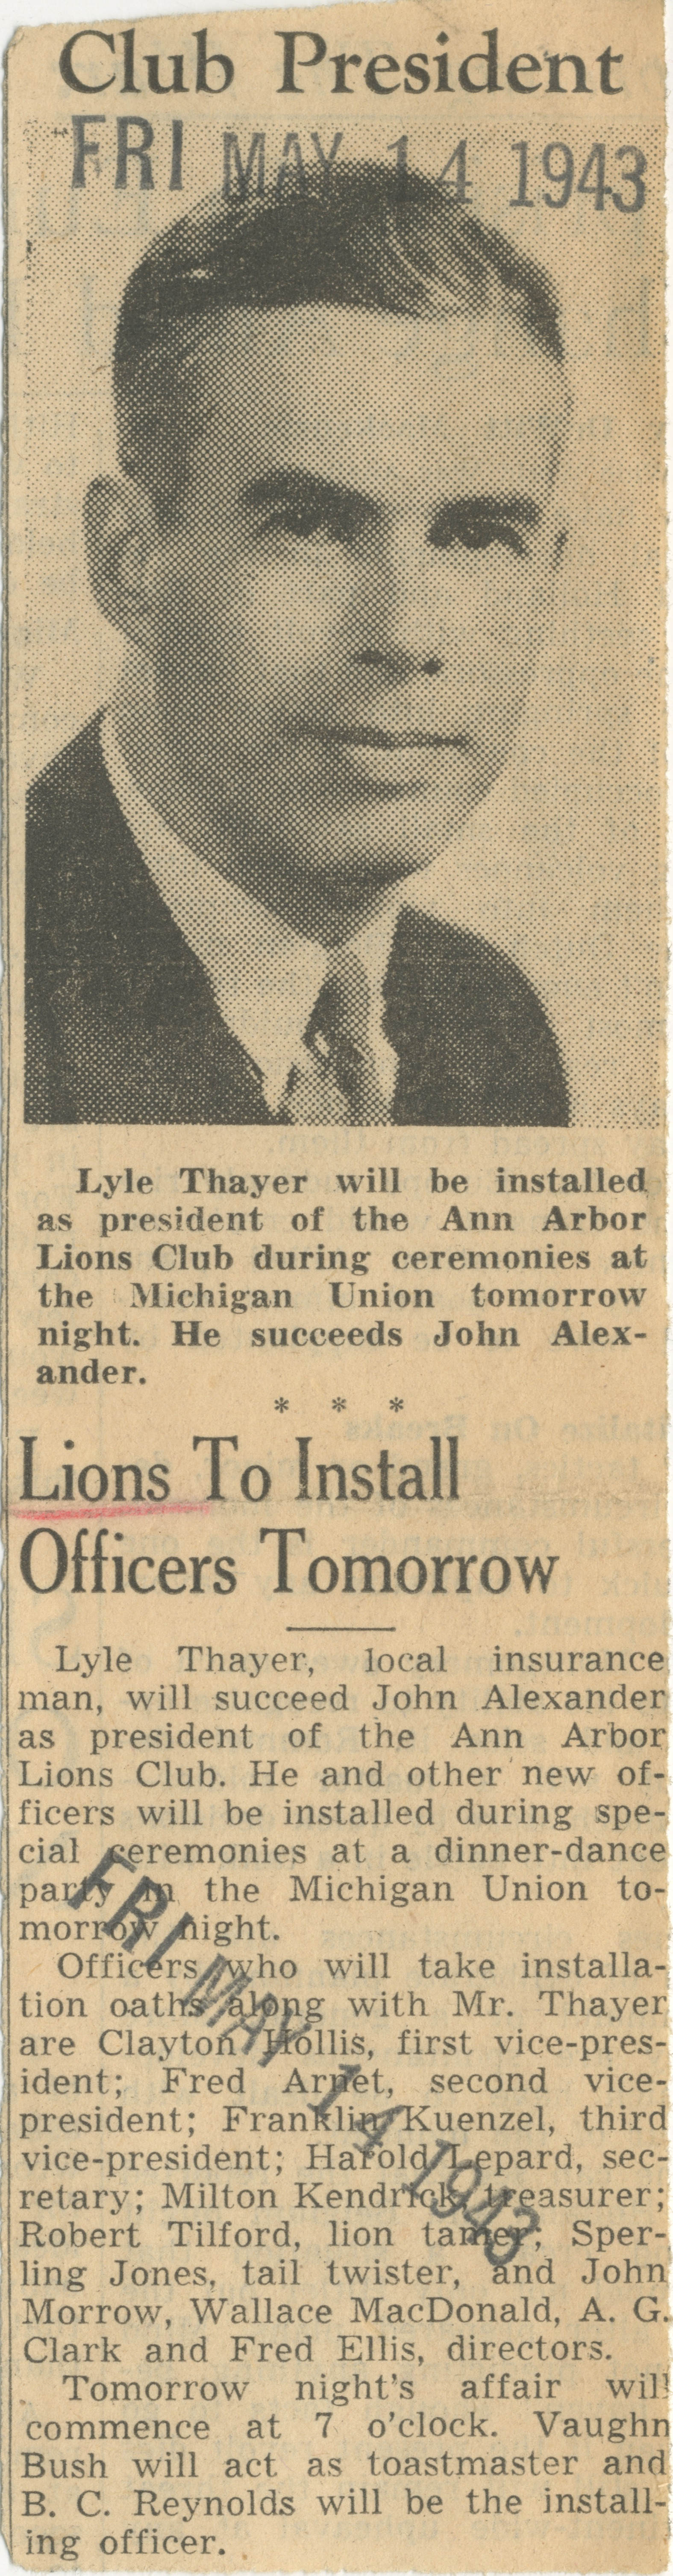 Lions To Install Officers Tomorrow image